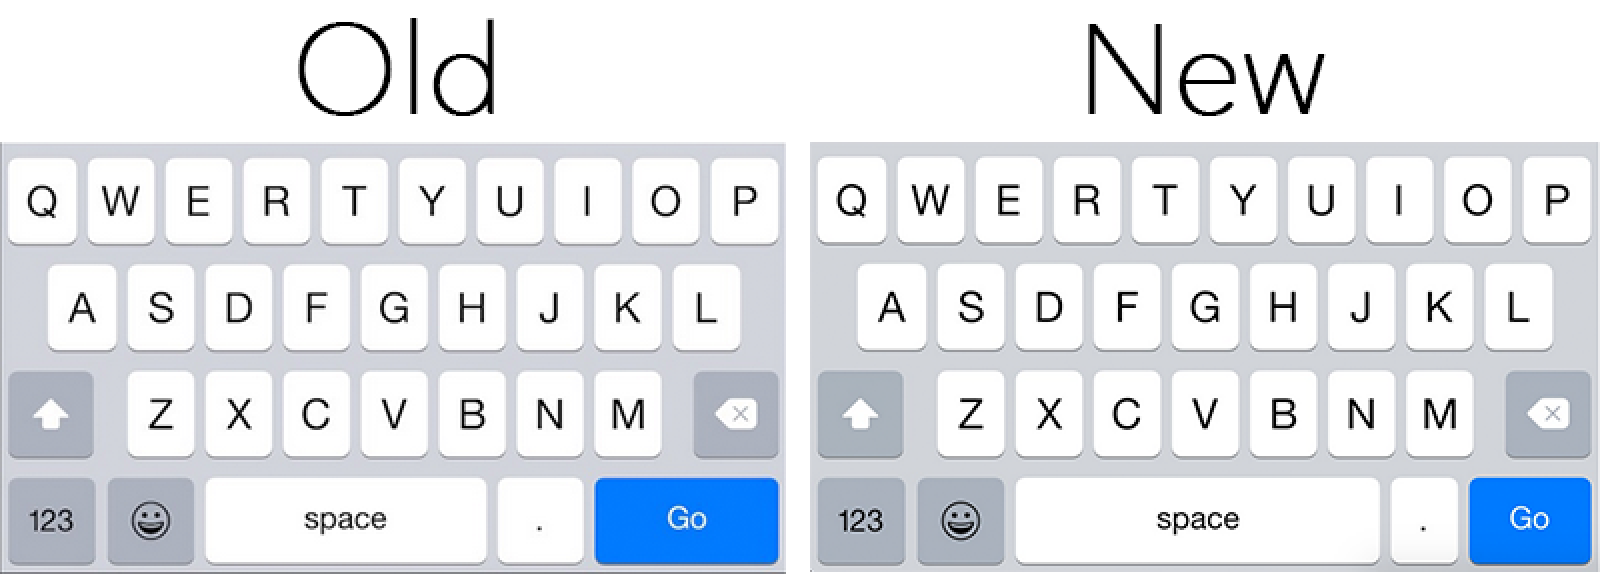 how to download old texts from iphone to mac